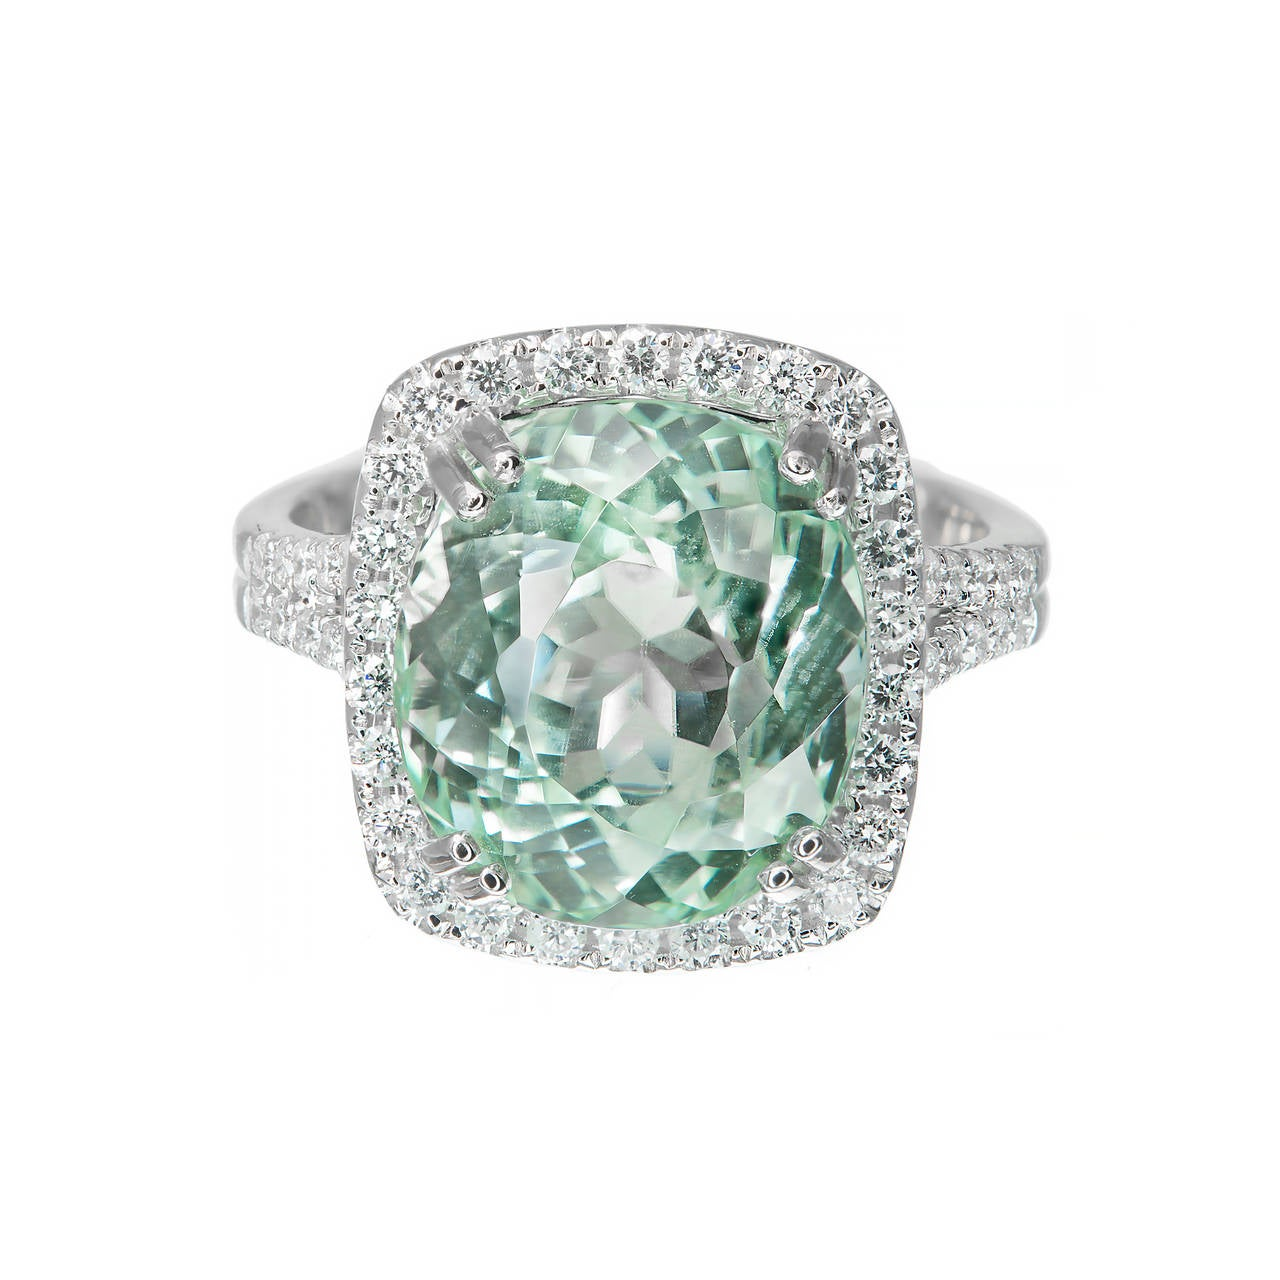 diamond light diamonds green replies likes cvgjaxjwuayrayb twitter talore retweets